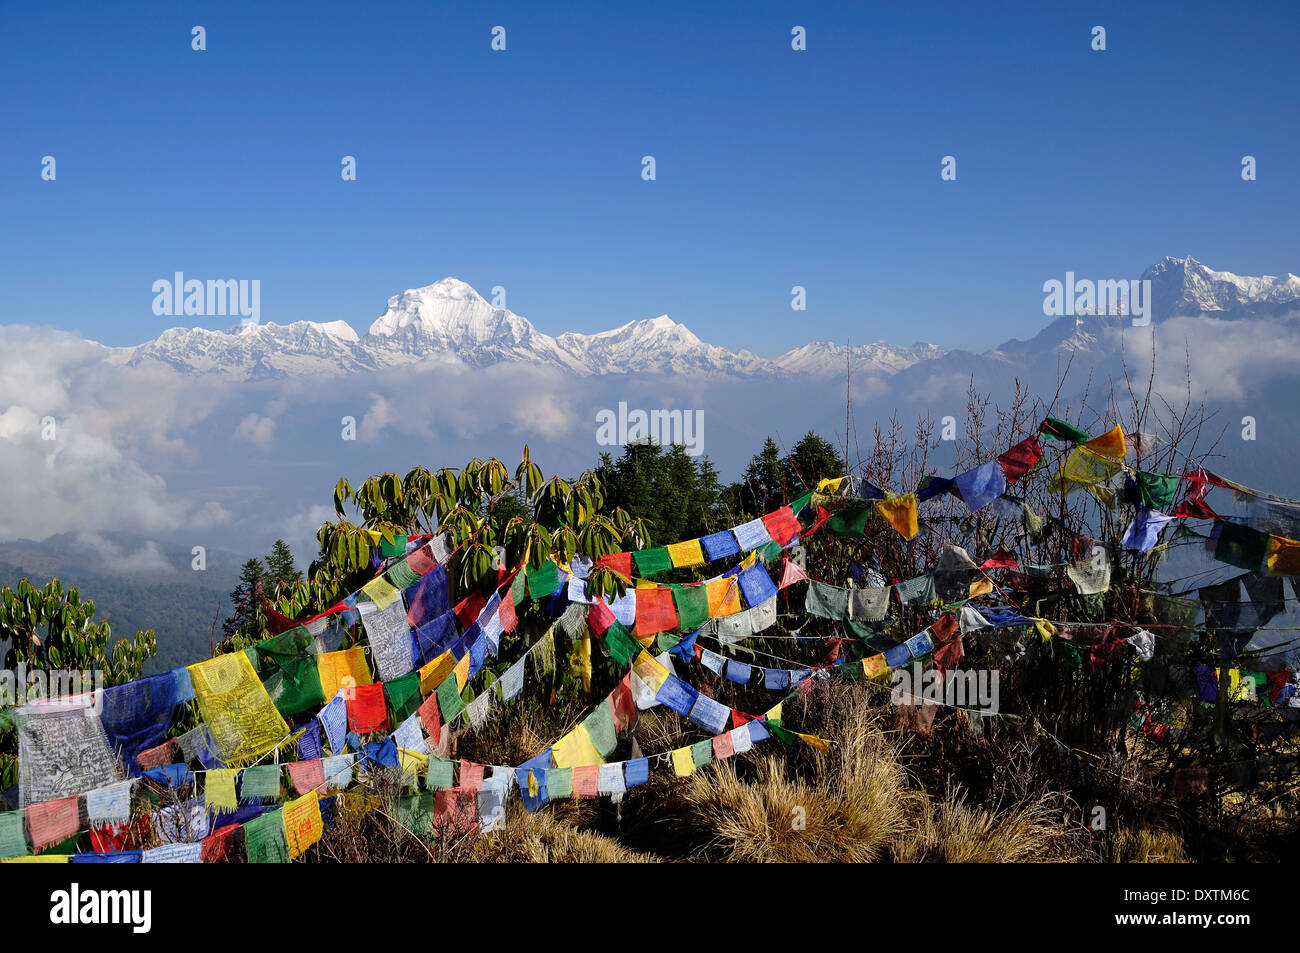 Annapurna Mountain seen from Poon Hill (3210m) while trekking around Annapurna. - Stock Image